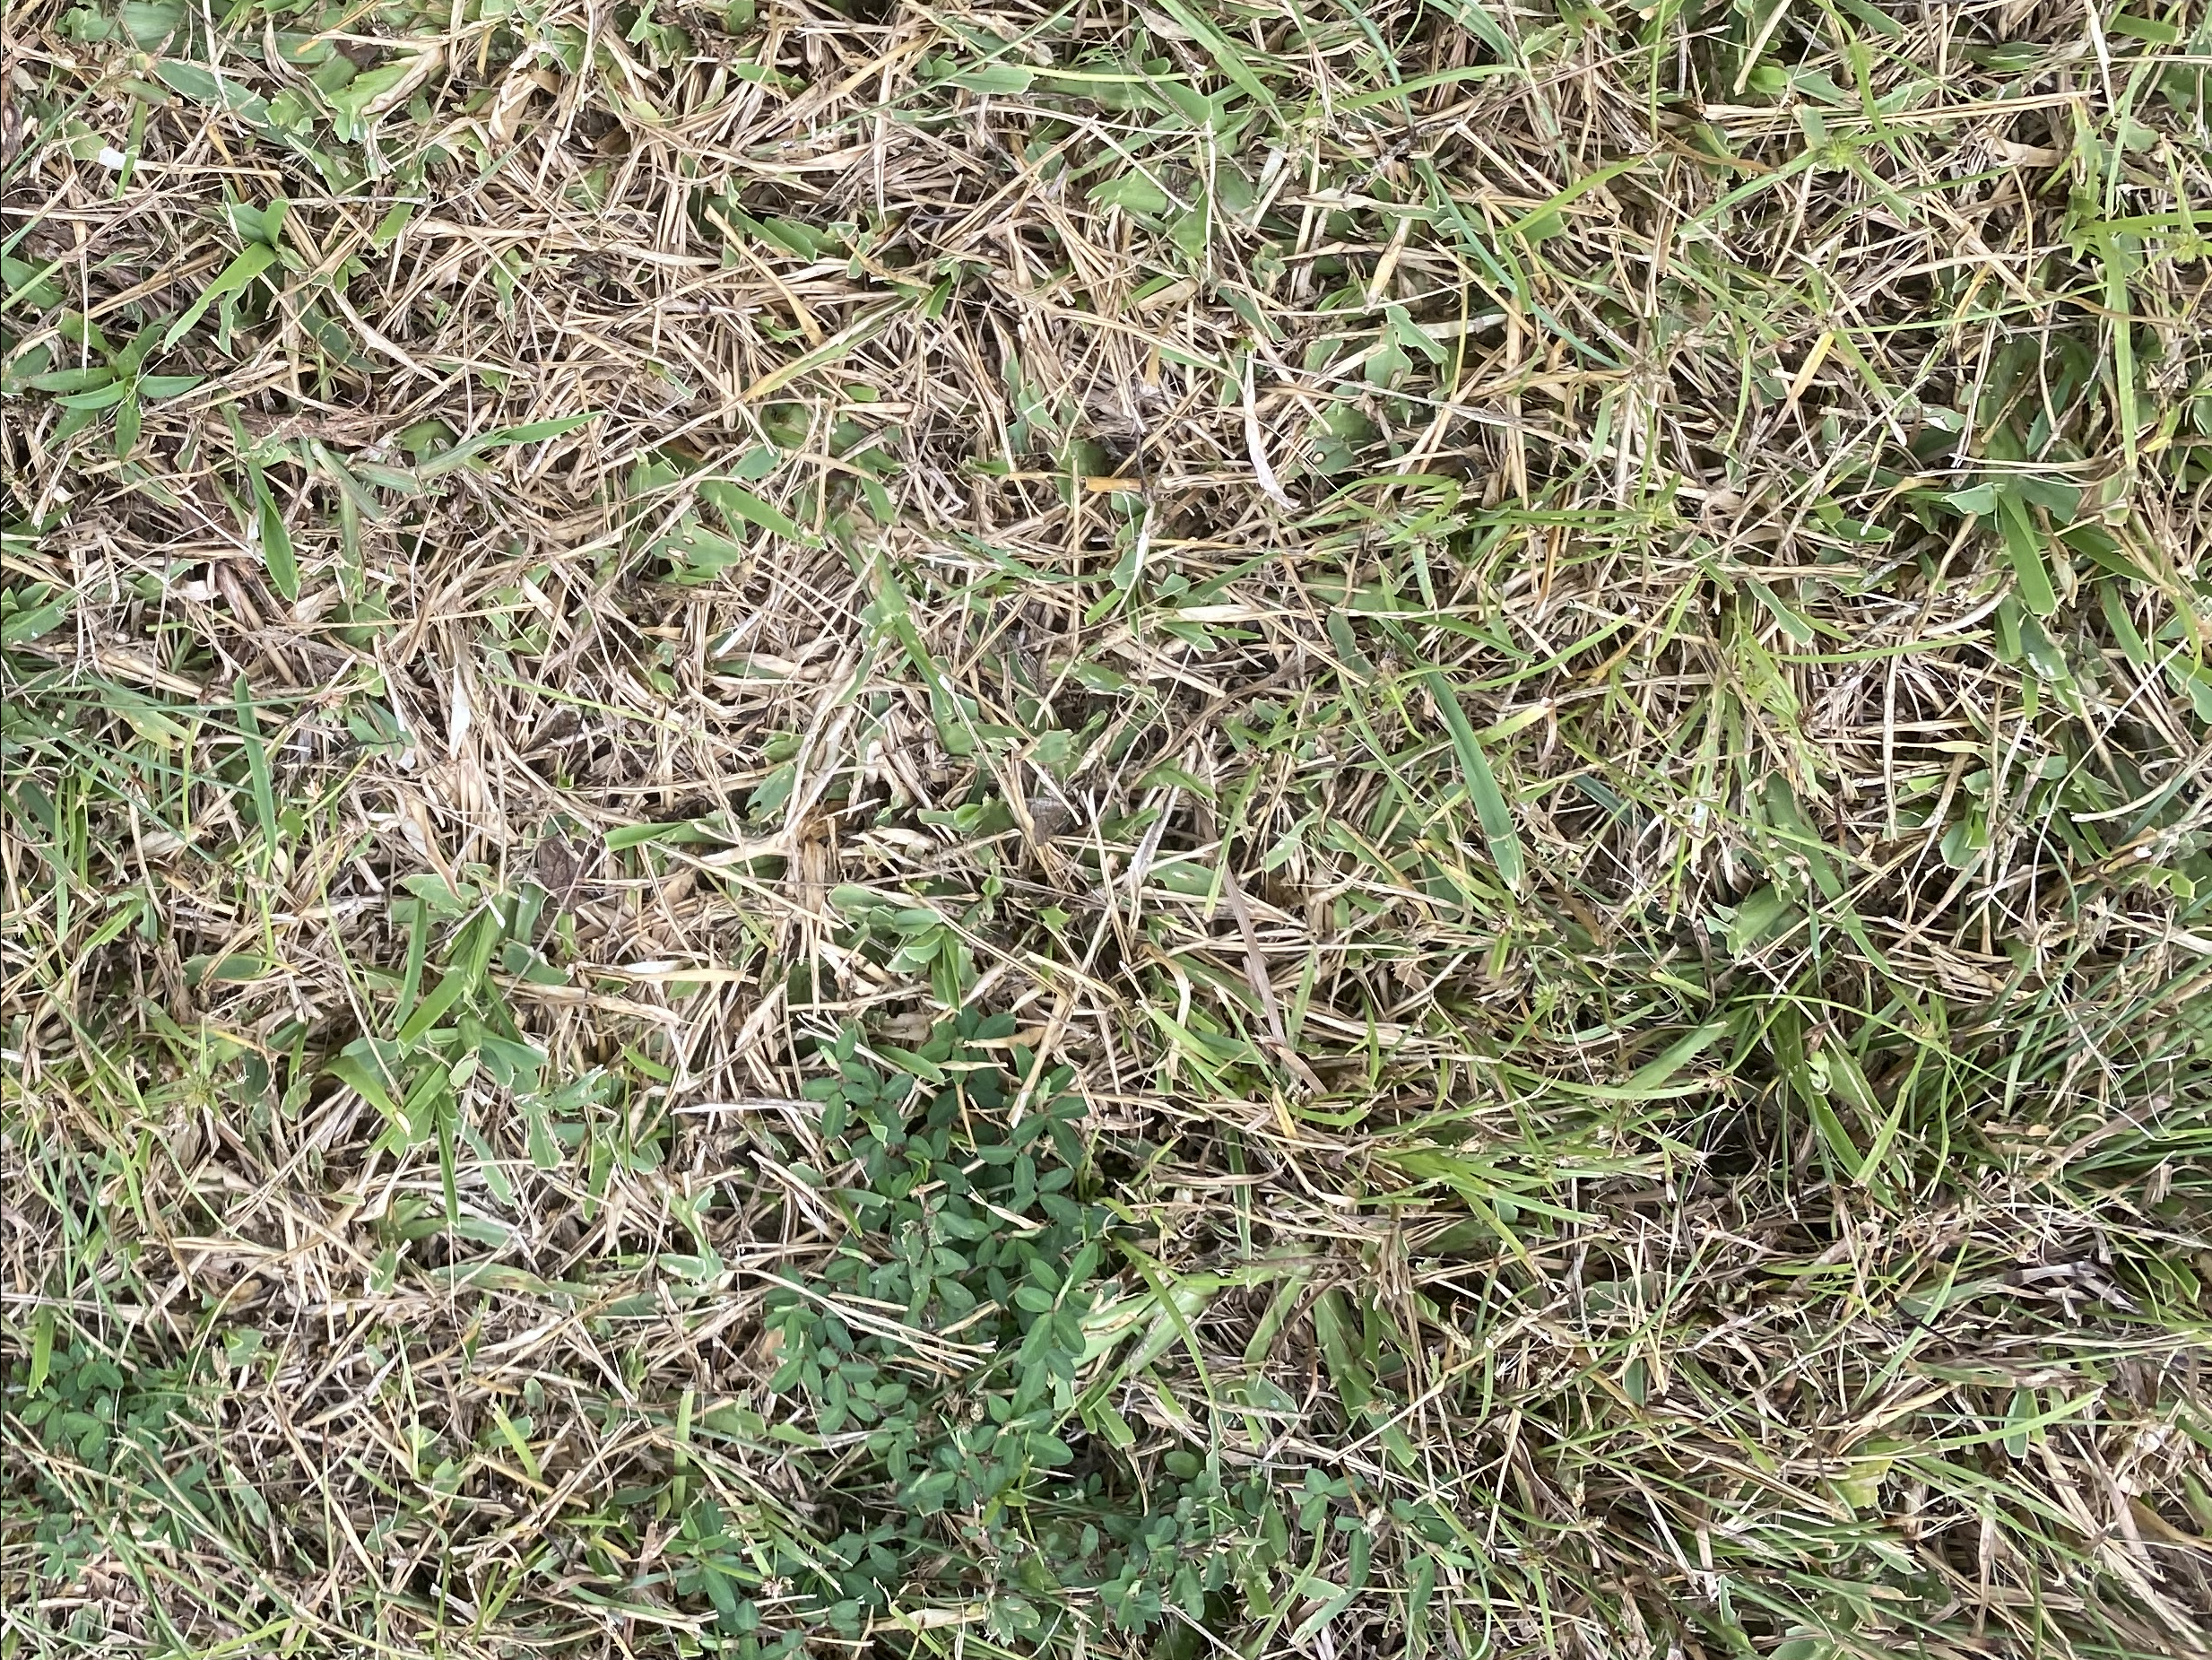 Sod webworm damage appears as yellowing to brown patches in the lawn.png thumbnail